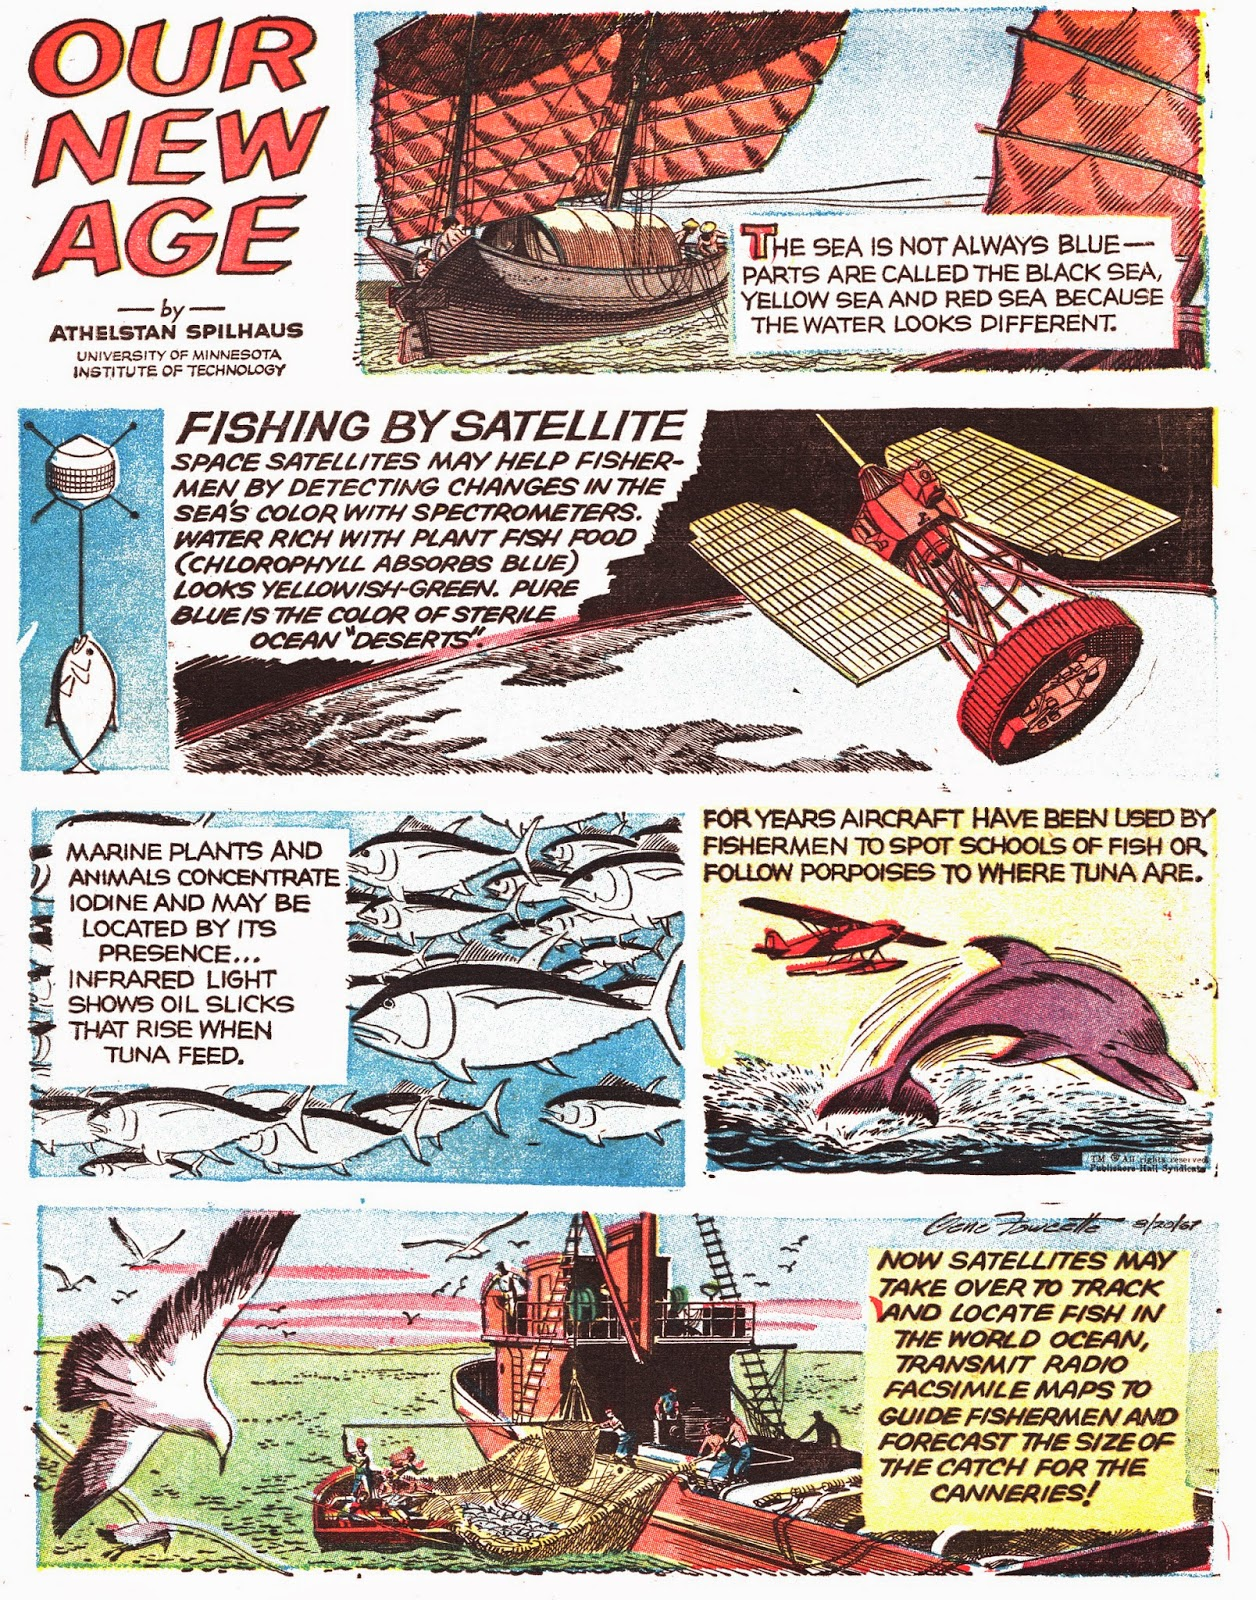 """Fishing by Satellite,""  Our New Age.  Text by Athelstan Spilhaus, drawn by Gene Fawcette.  First published July 23, 1967. Image from the collection of Ger Apeldoorn, posted at  The Fabulous Fifties ."